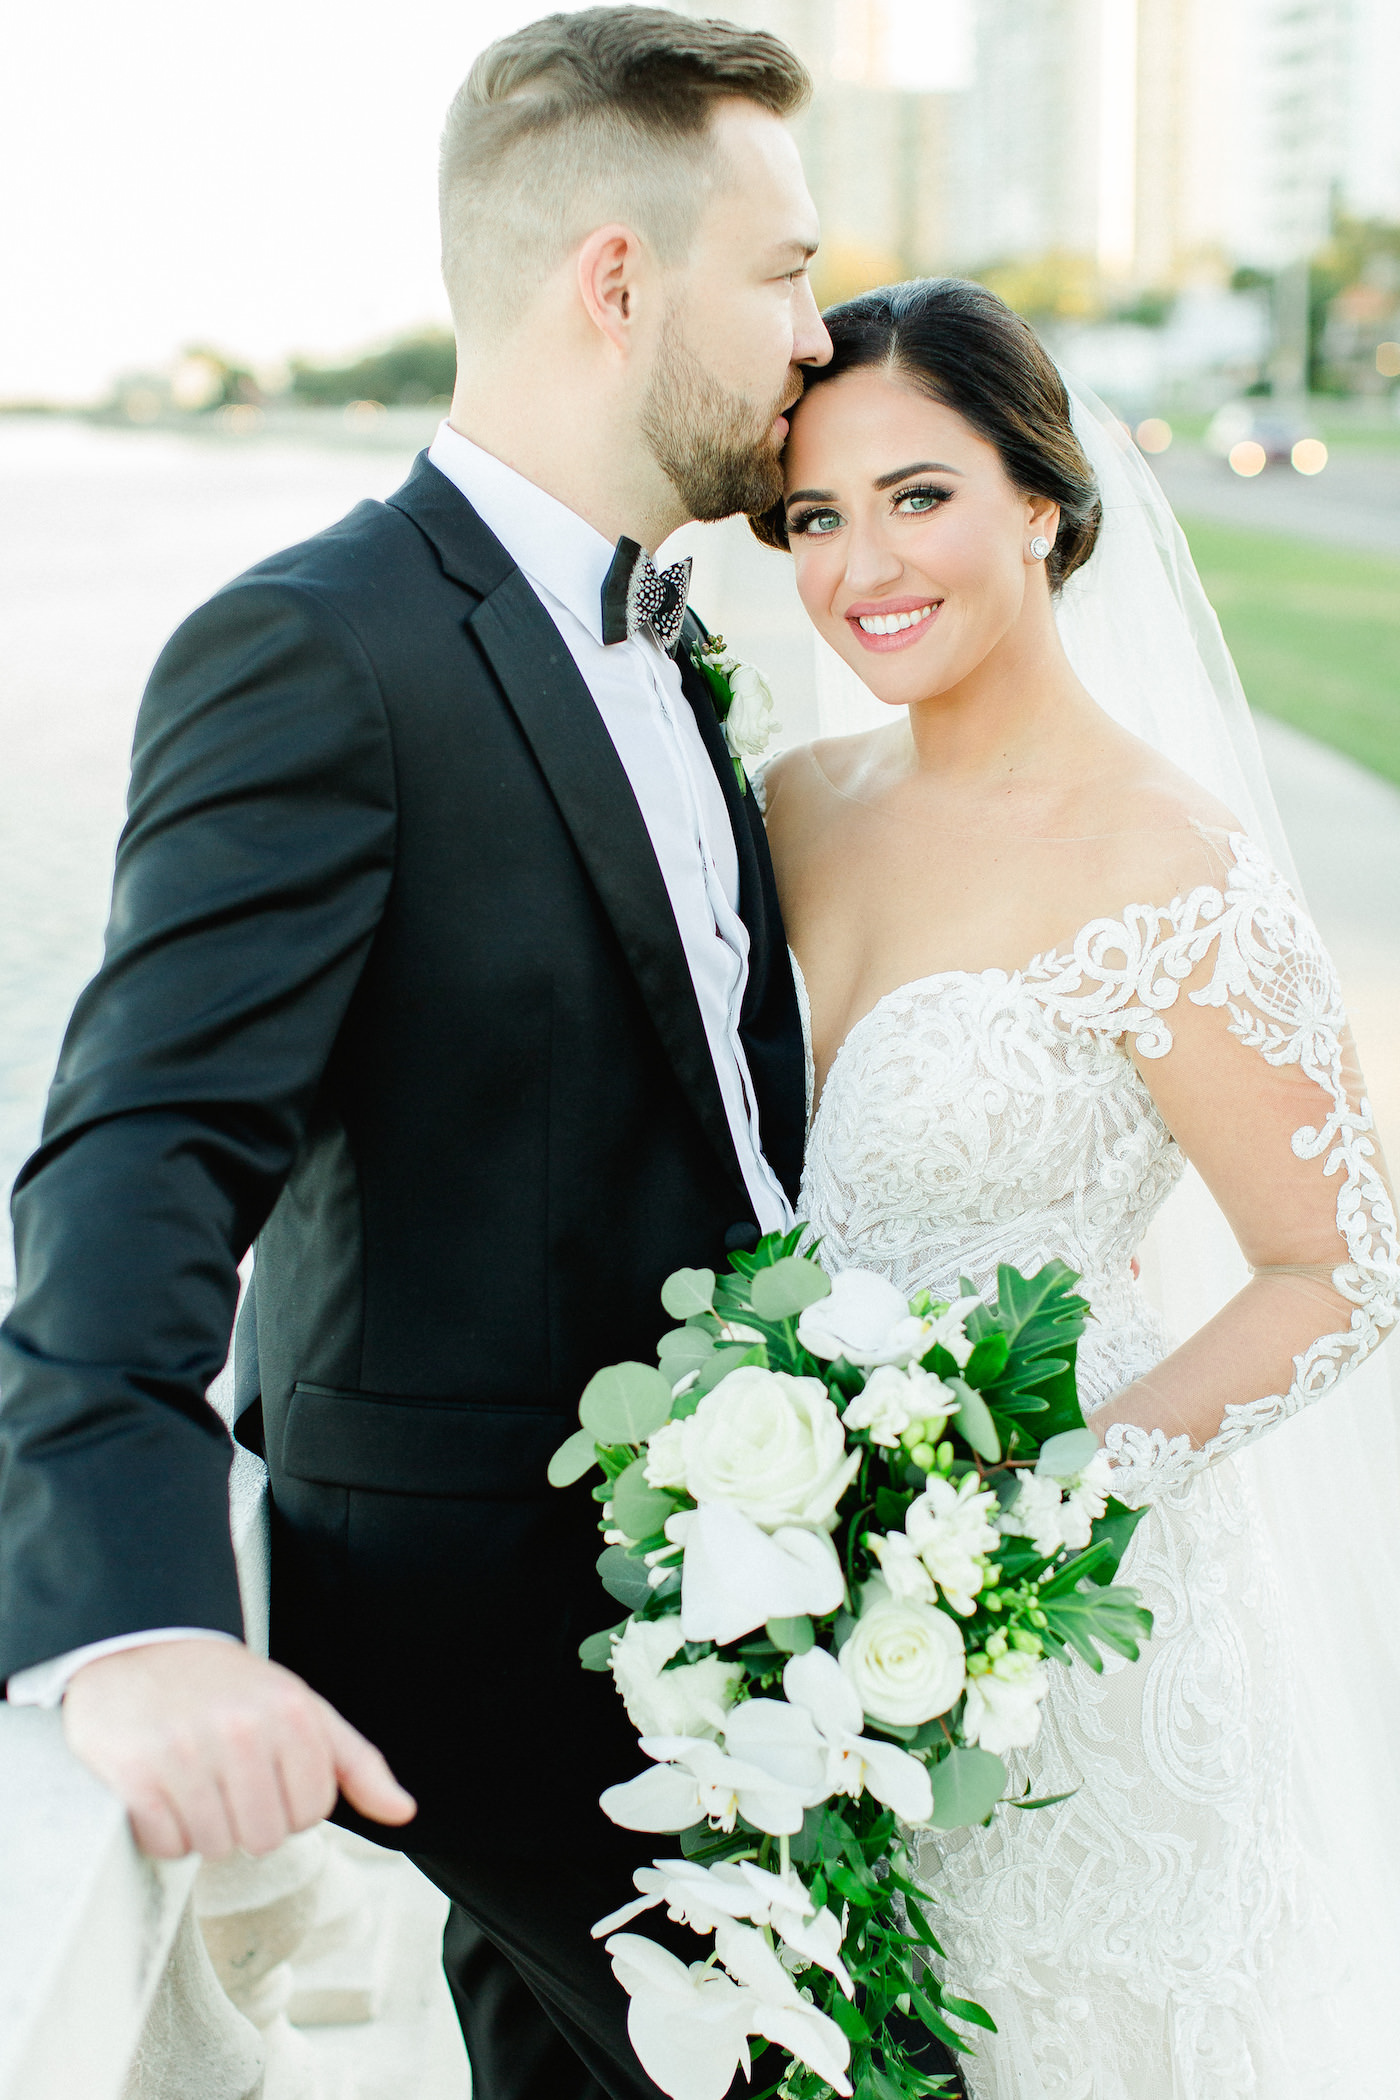 Classic Tampa Bay Bride and Groom Wedding Portrait on Bayshore Boulevard, Florida Bride in Illusion Lace Sleeve Fit and Flare Wedding Dress, Holding Wedding Floral Bouquet with White Orchids, Ivory Roses and Greenery